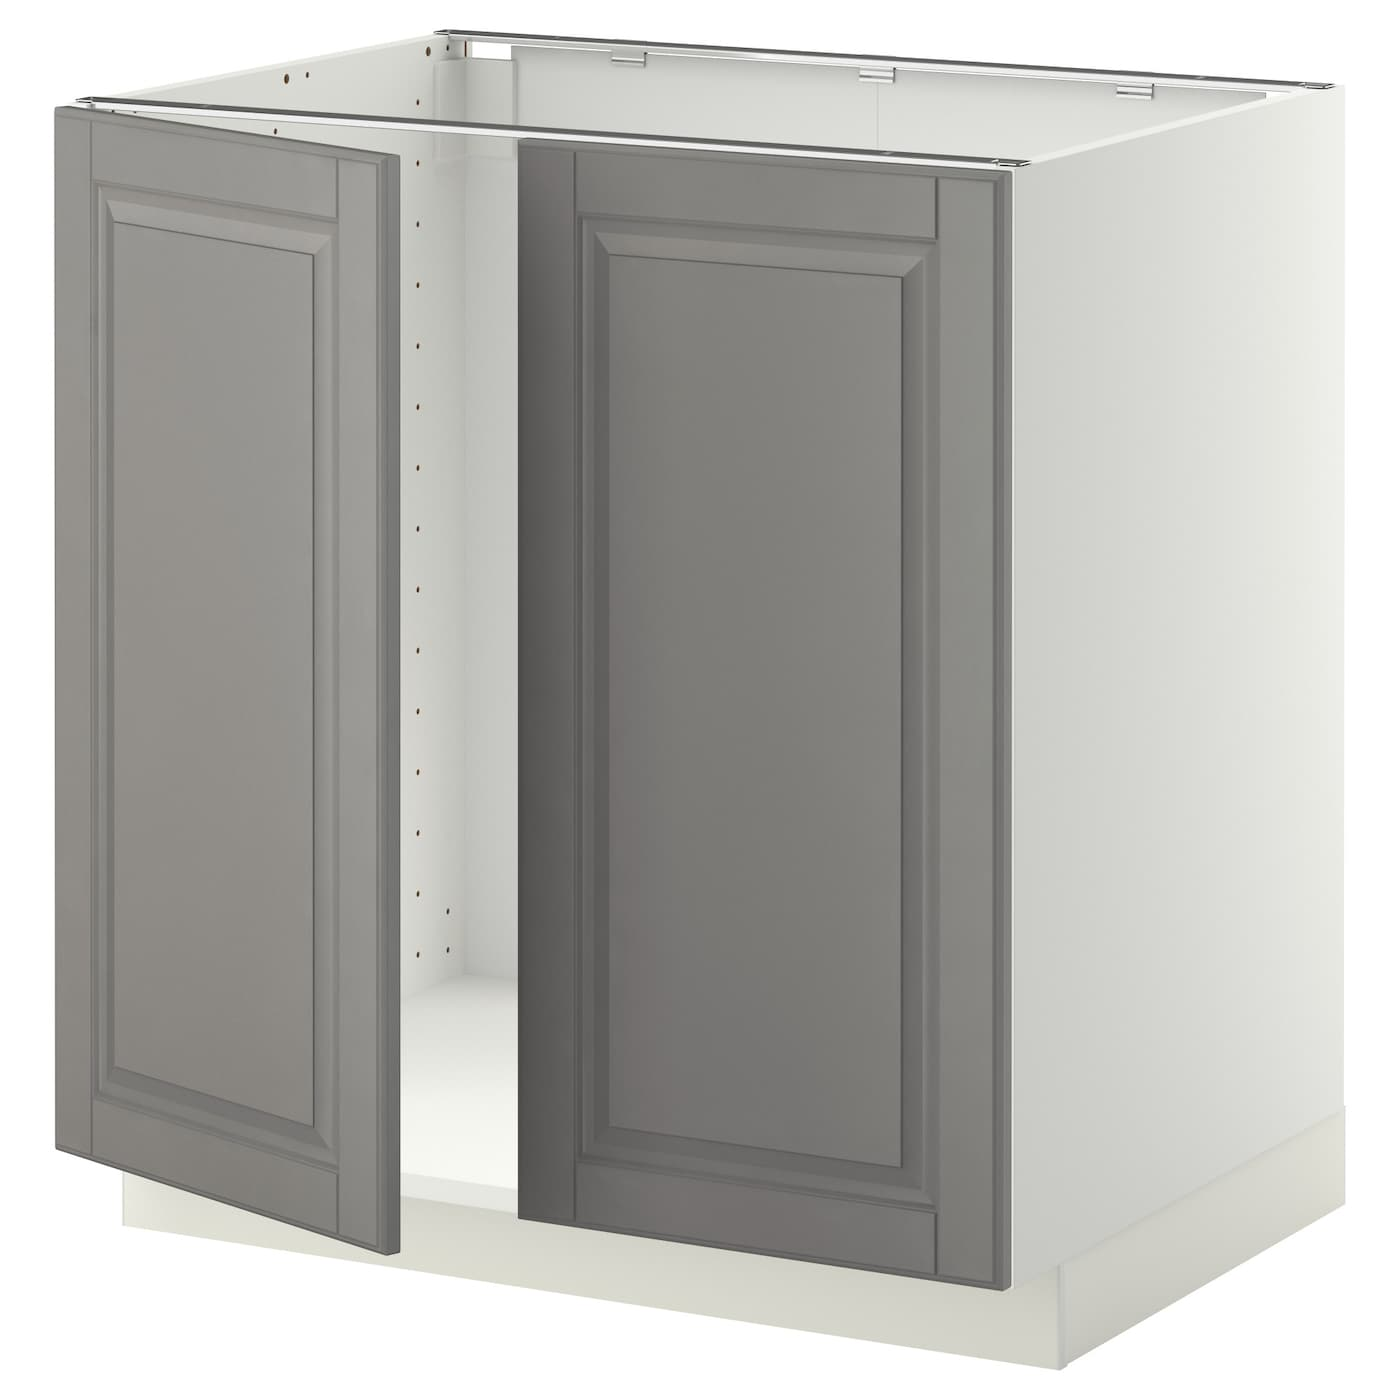 IKEA METOD base cabinet for sink + 2 doors Sturdy frame construction, 18 mm thick.